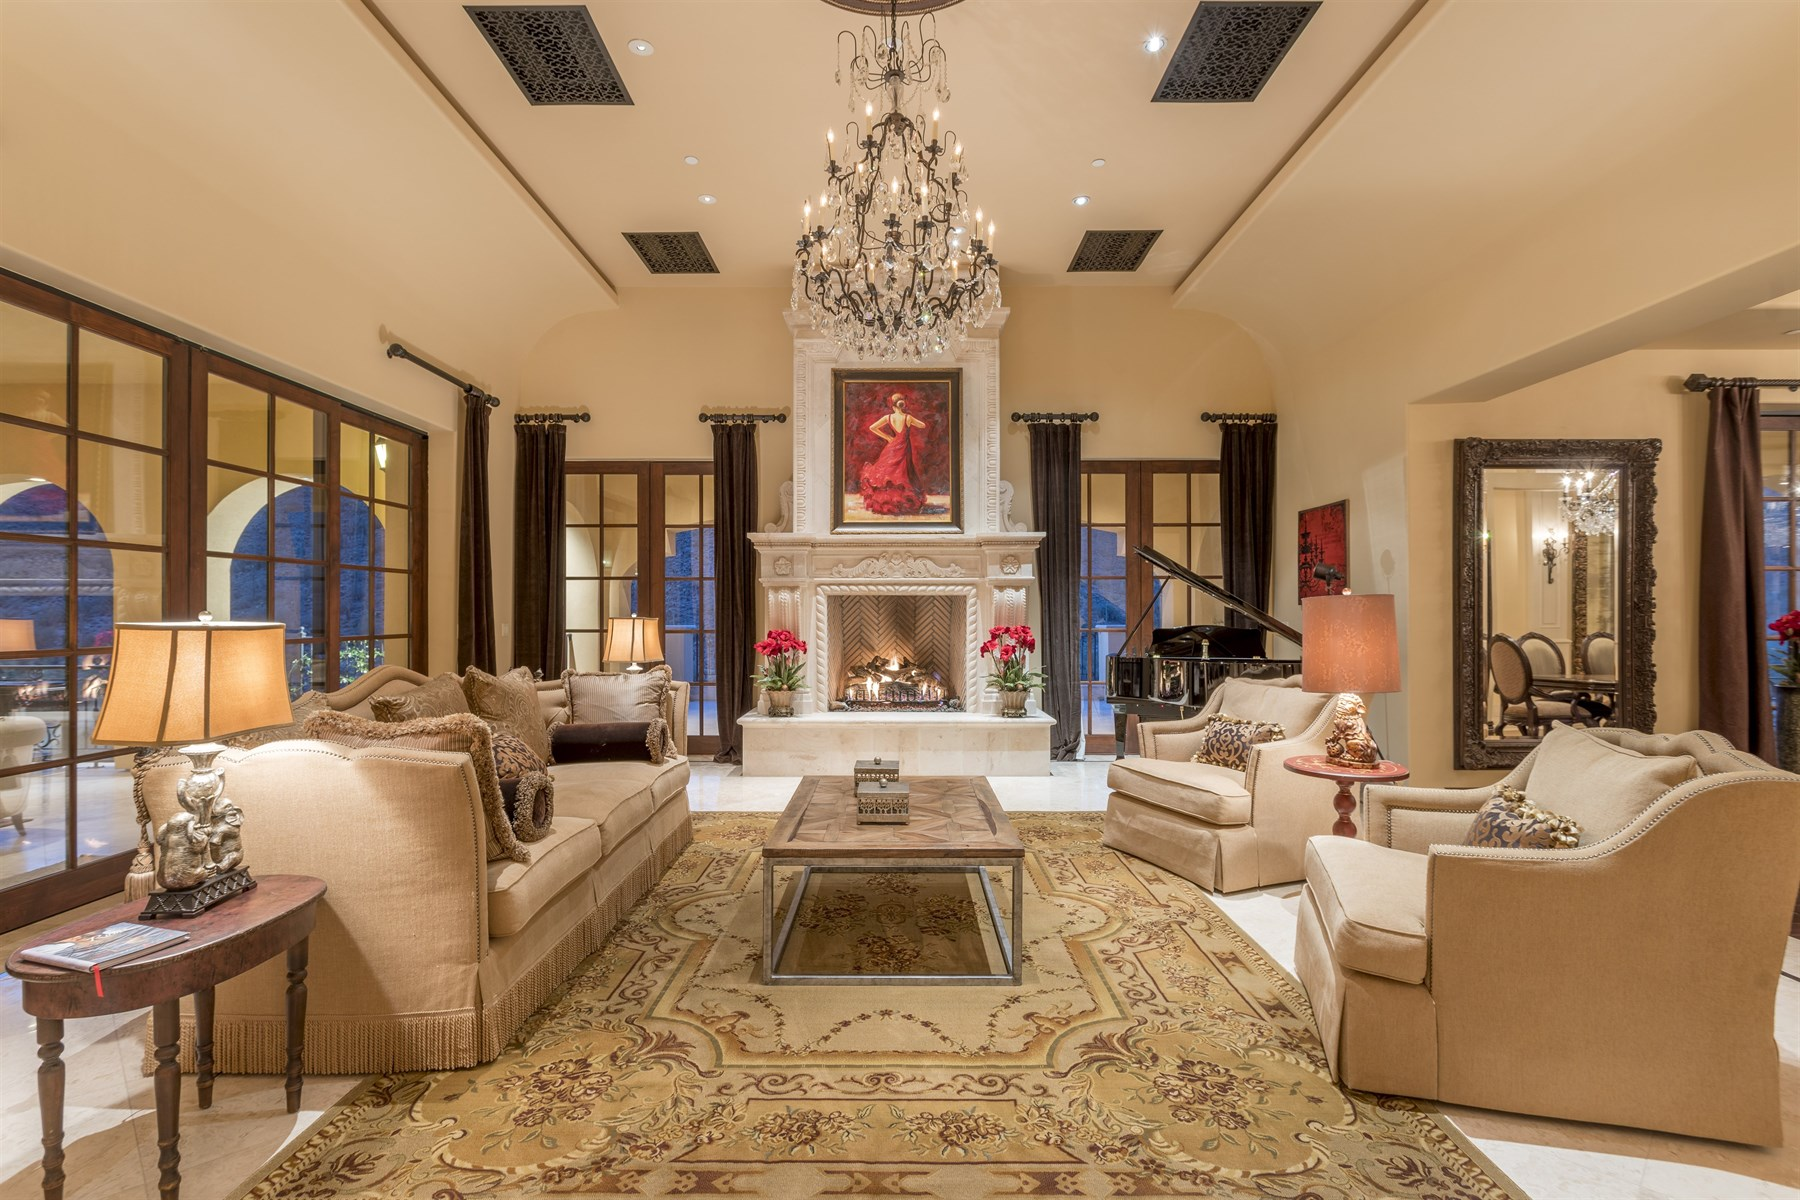 Single Family Home for Sale at Elegant Renovated Estate in Silverleaf 10966 E Grandview Way Scottsdale, Arizona 85255 United States